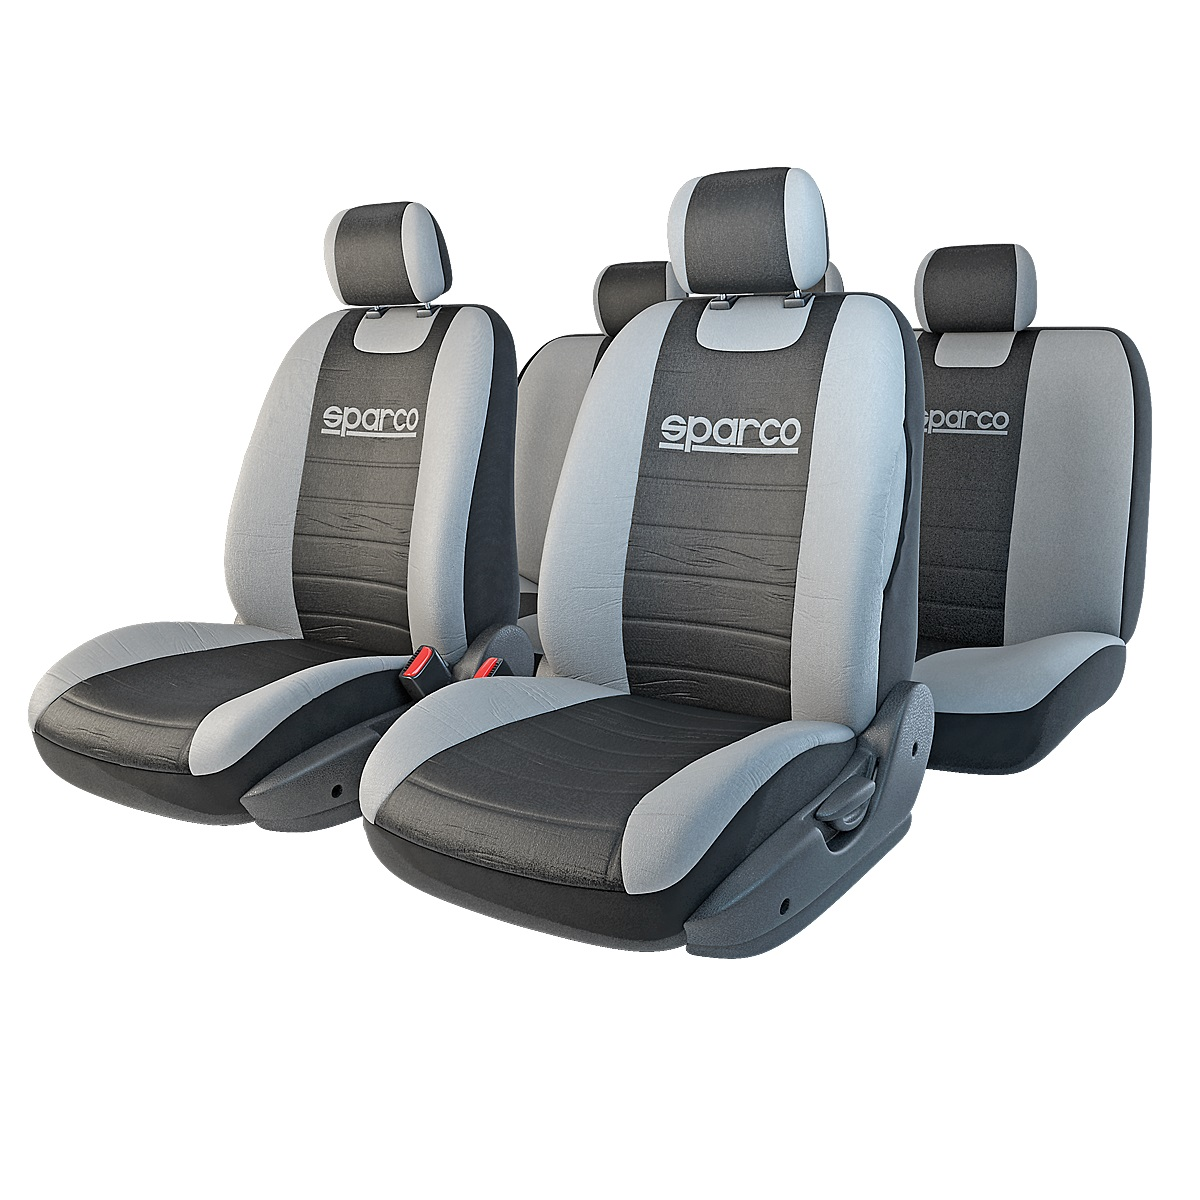 ����� �� ������� Sparco Spc/cls-1105 bk/gy